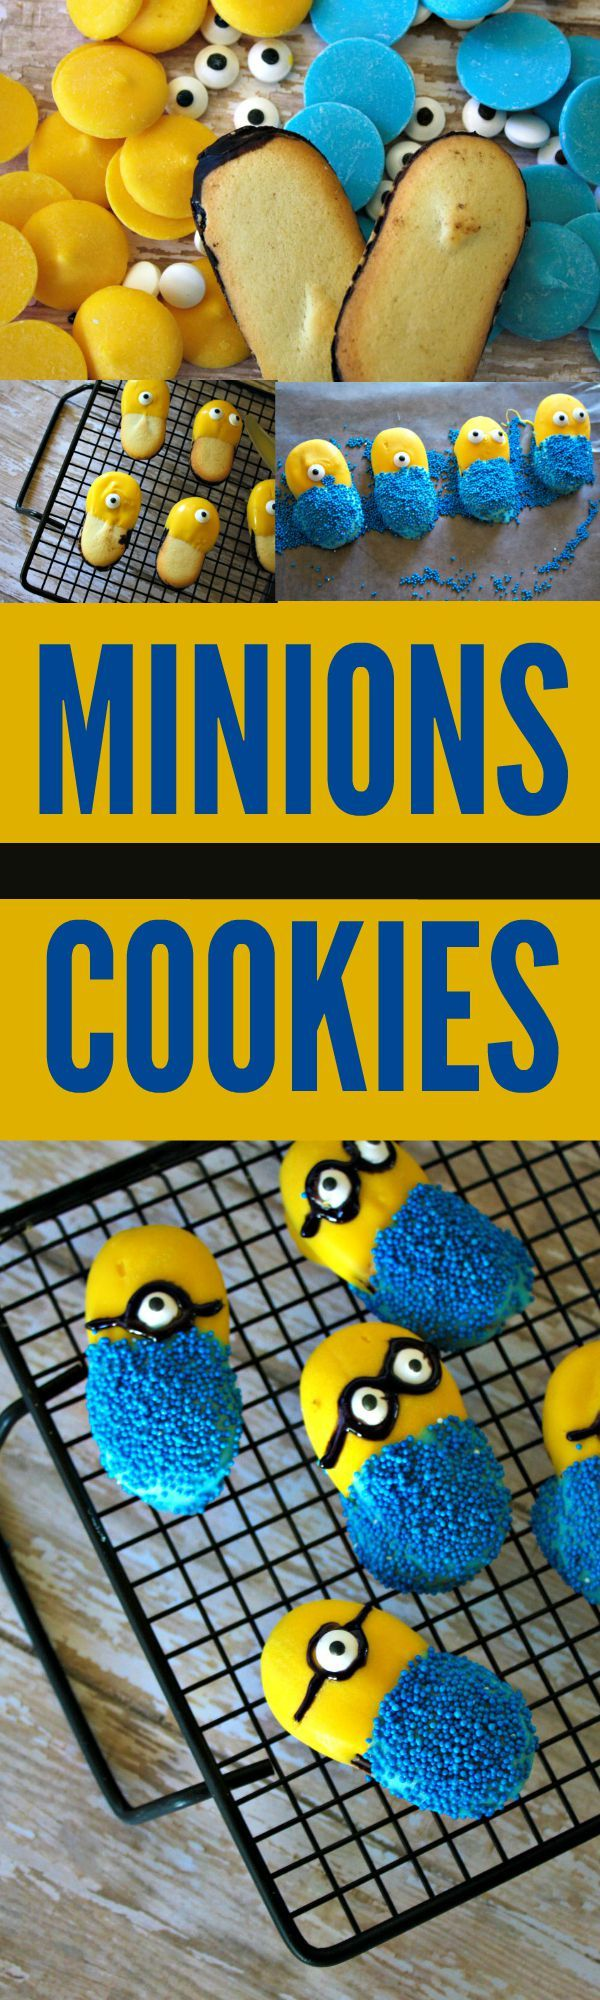 Minion Cookies Recipe Dessert Recipes Minion Cookies